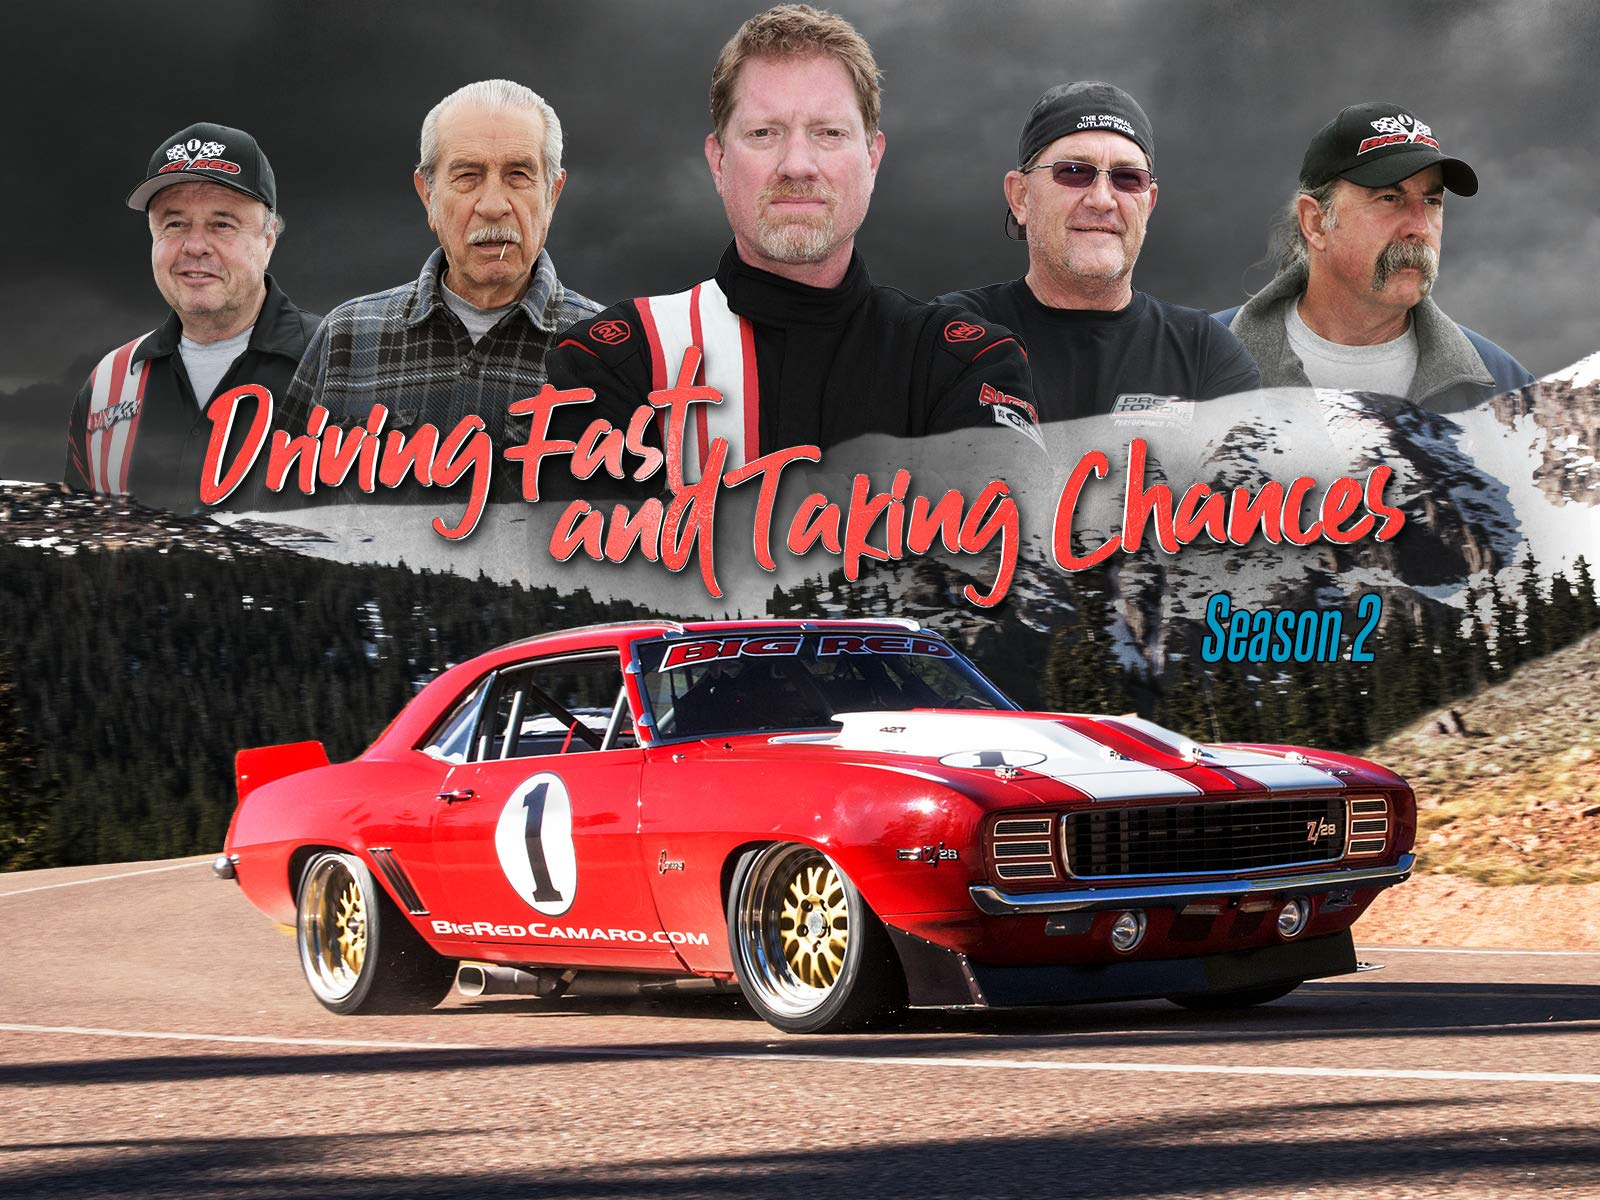 Driving Fast and Taking Chances - Season 2